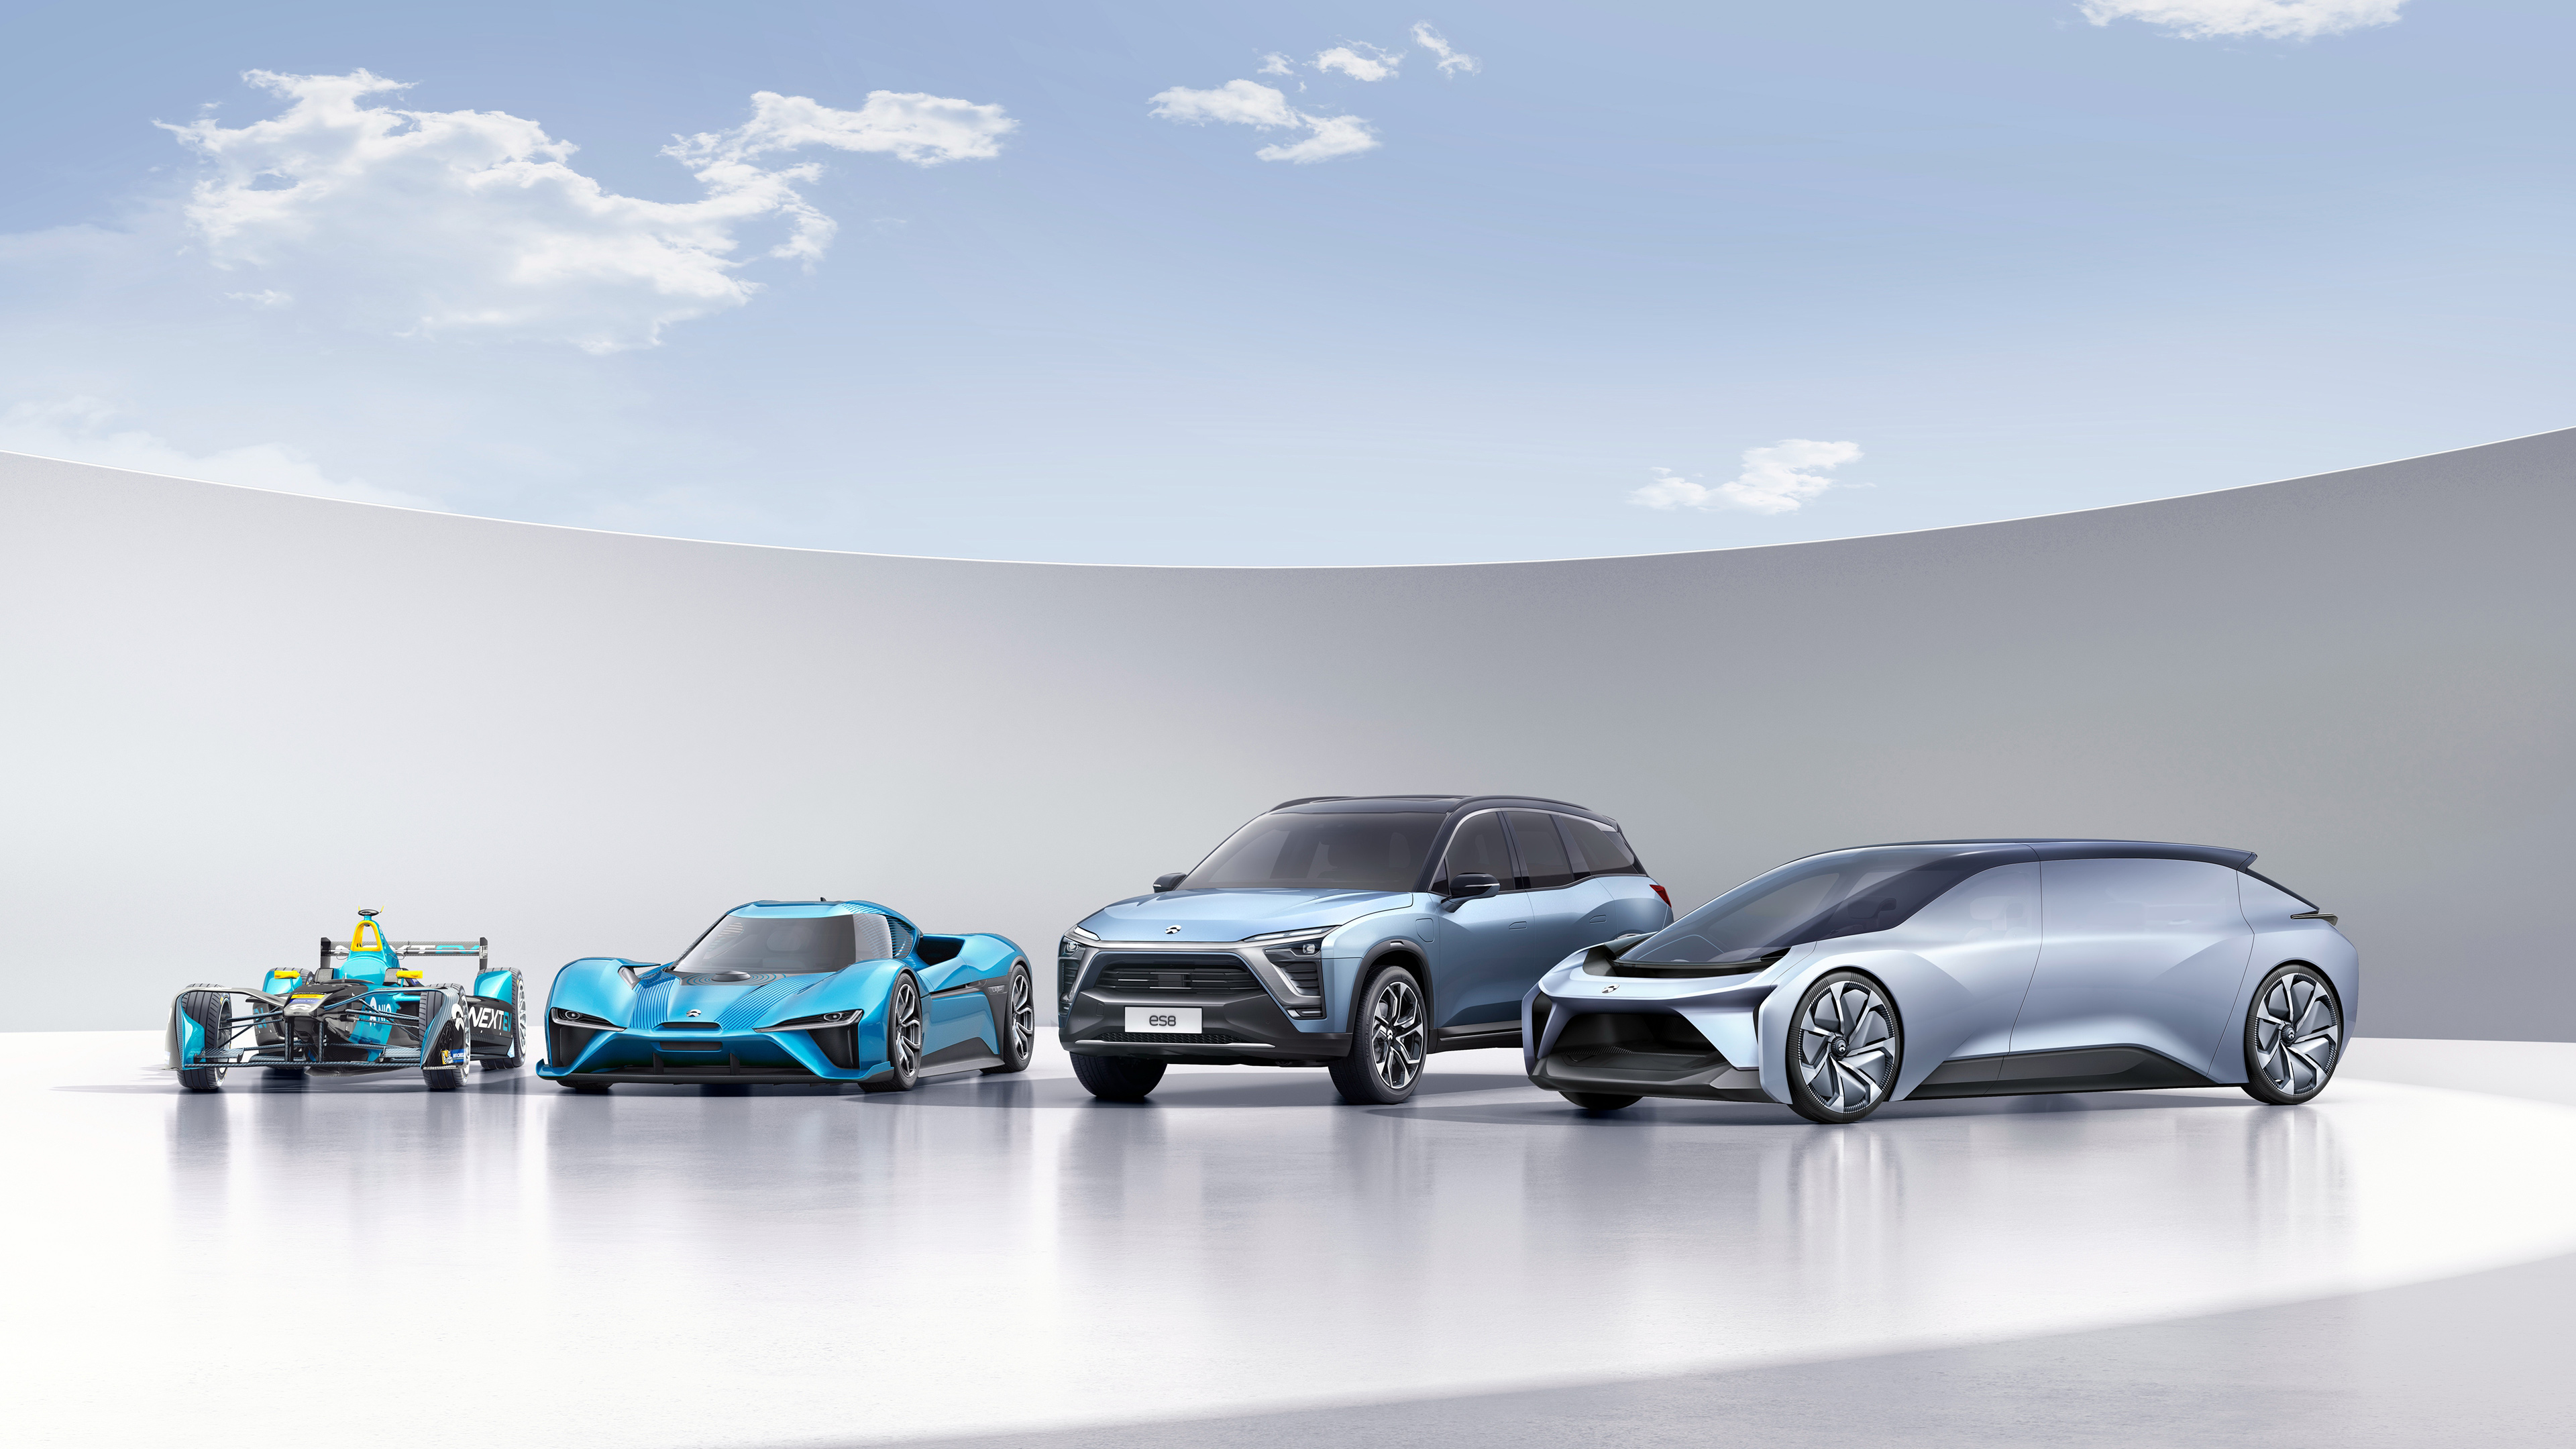 NextEV NIO Electric Cars 4K151569404 - NextEV NIO Electric Cars 4K - NIO, NextEV, Electric, Cars